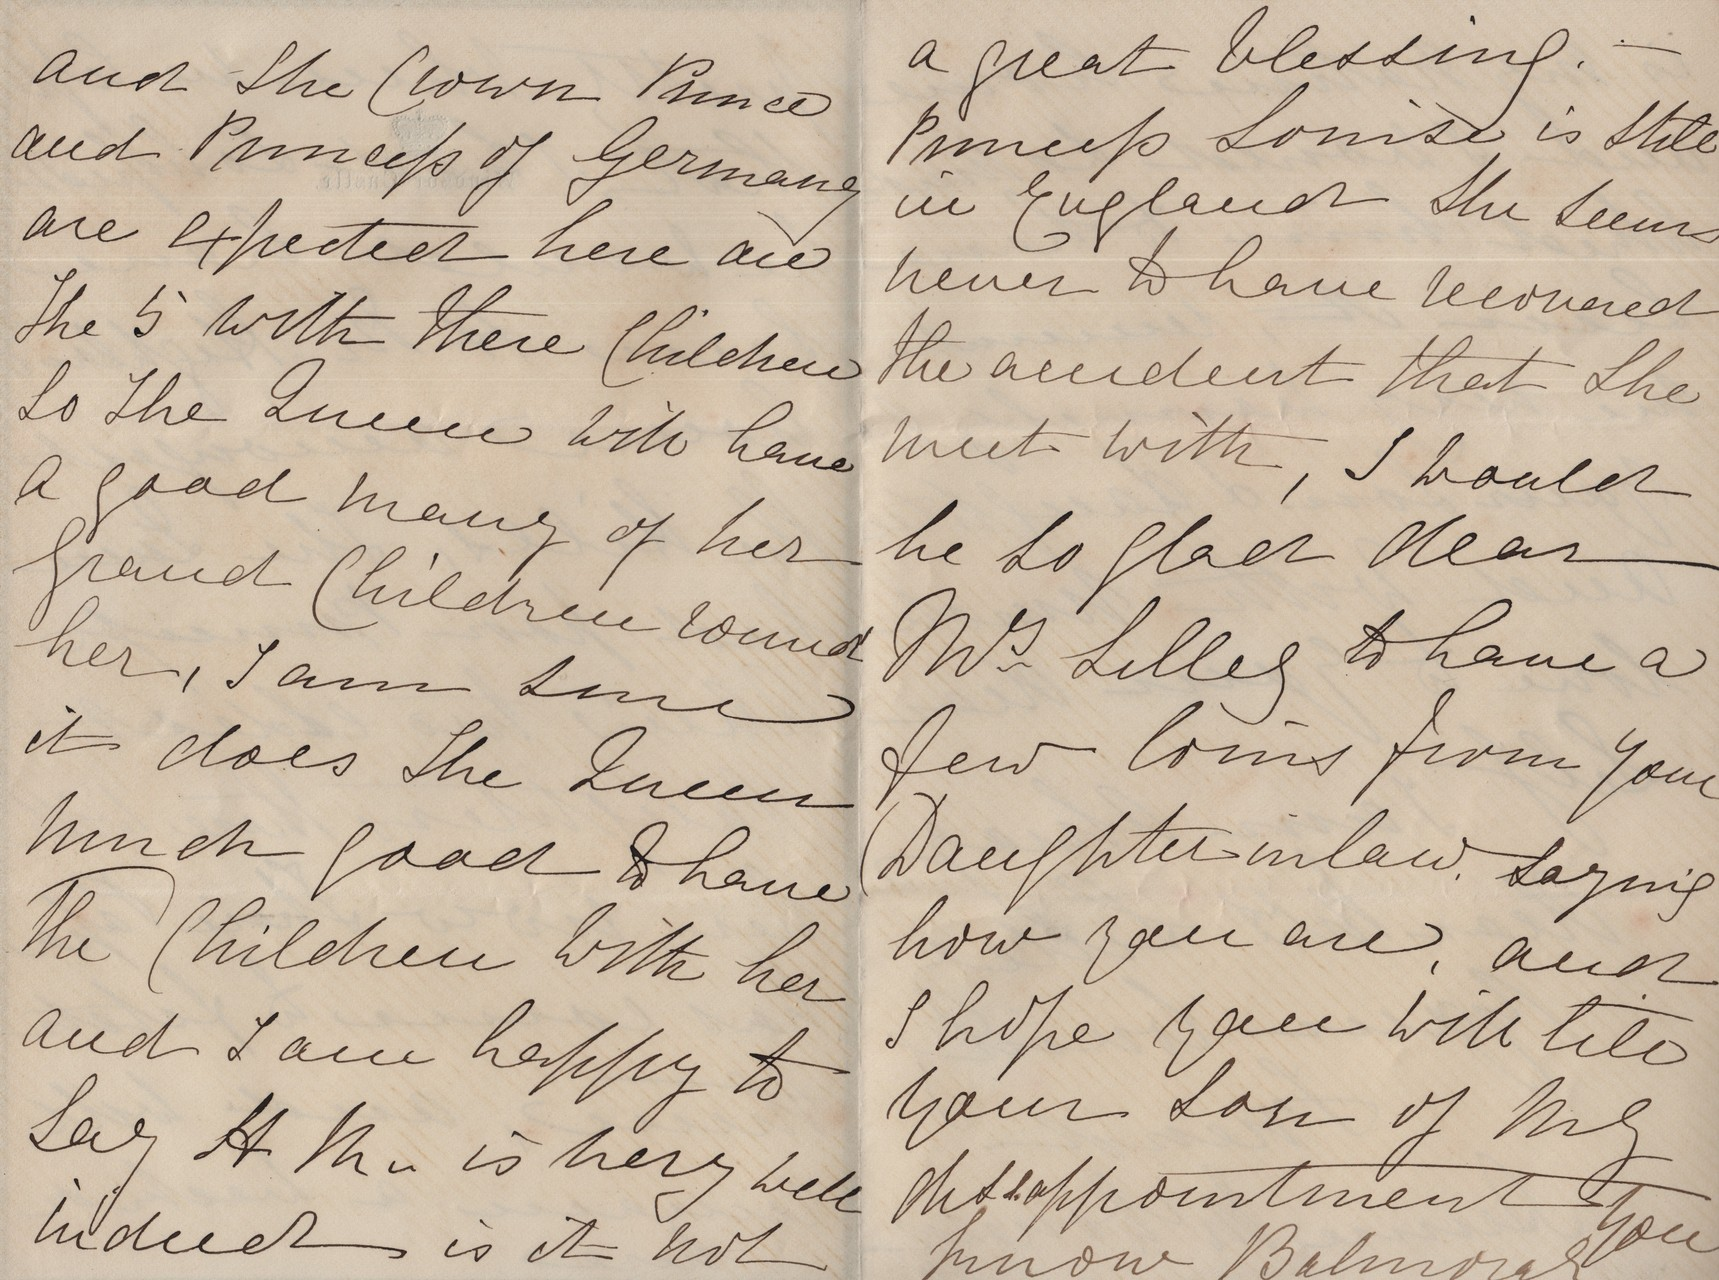 1881 June 26th Annie MacDonald to MDL